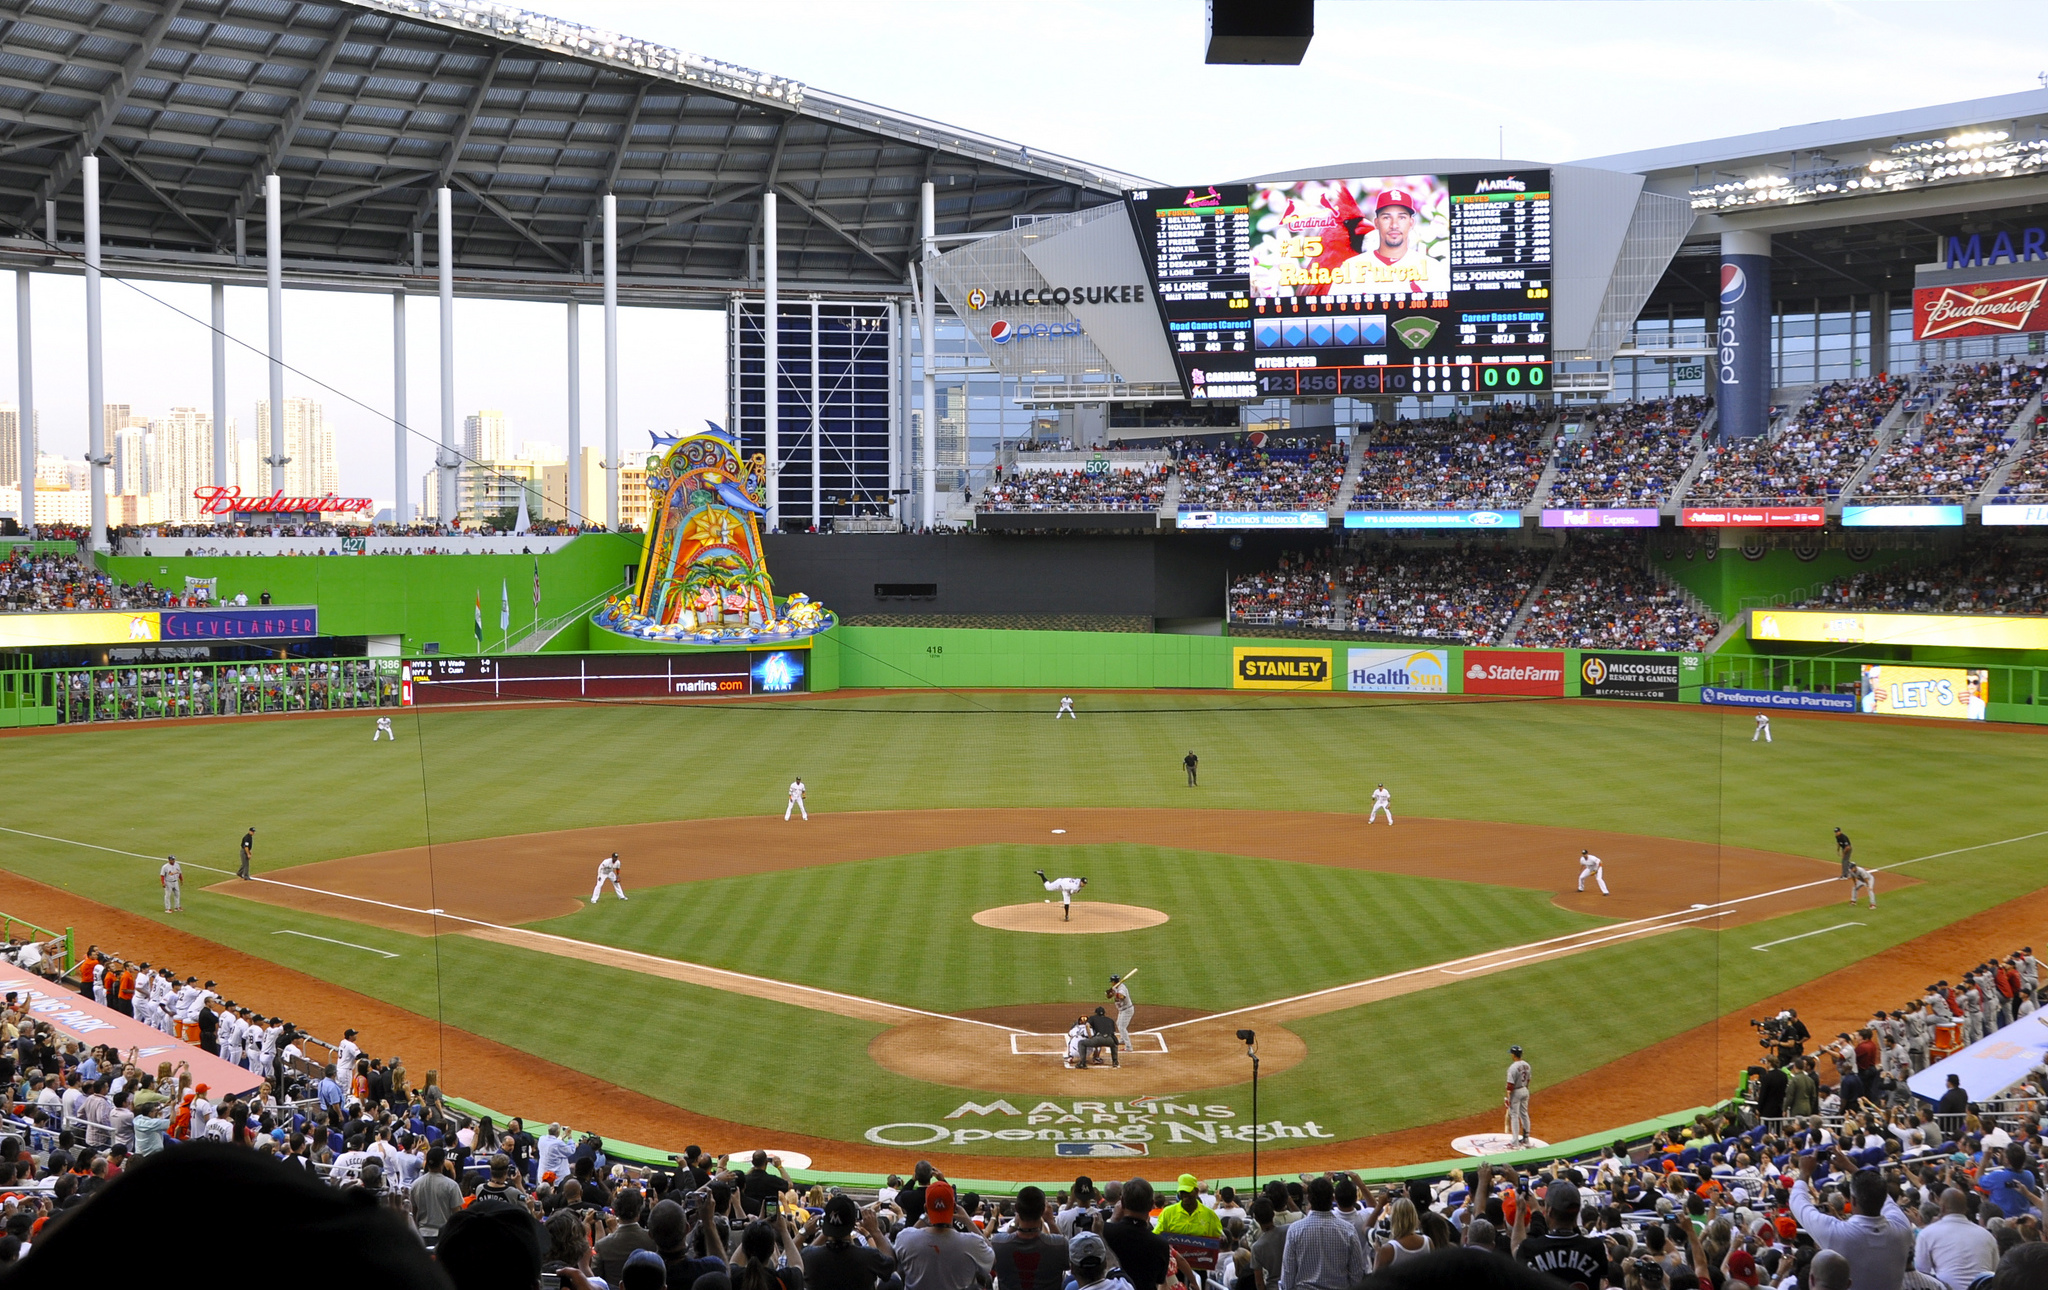 Marlins_First_Pitch_at_Marlins_Park,_Apr